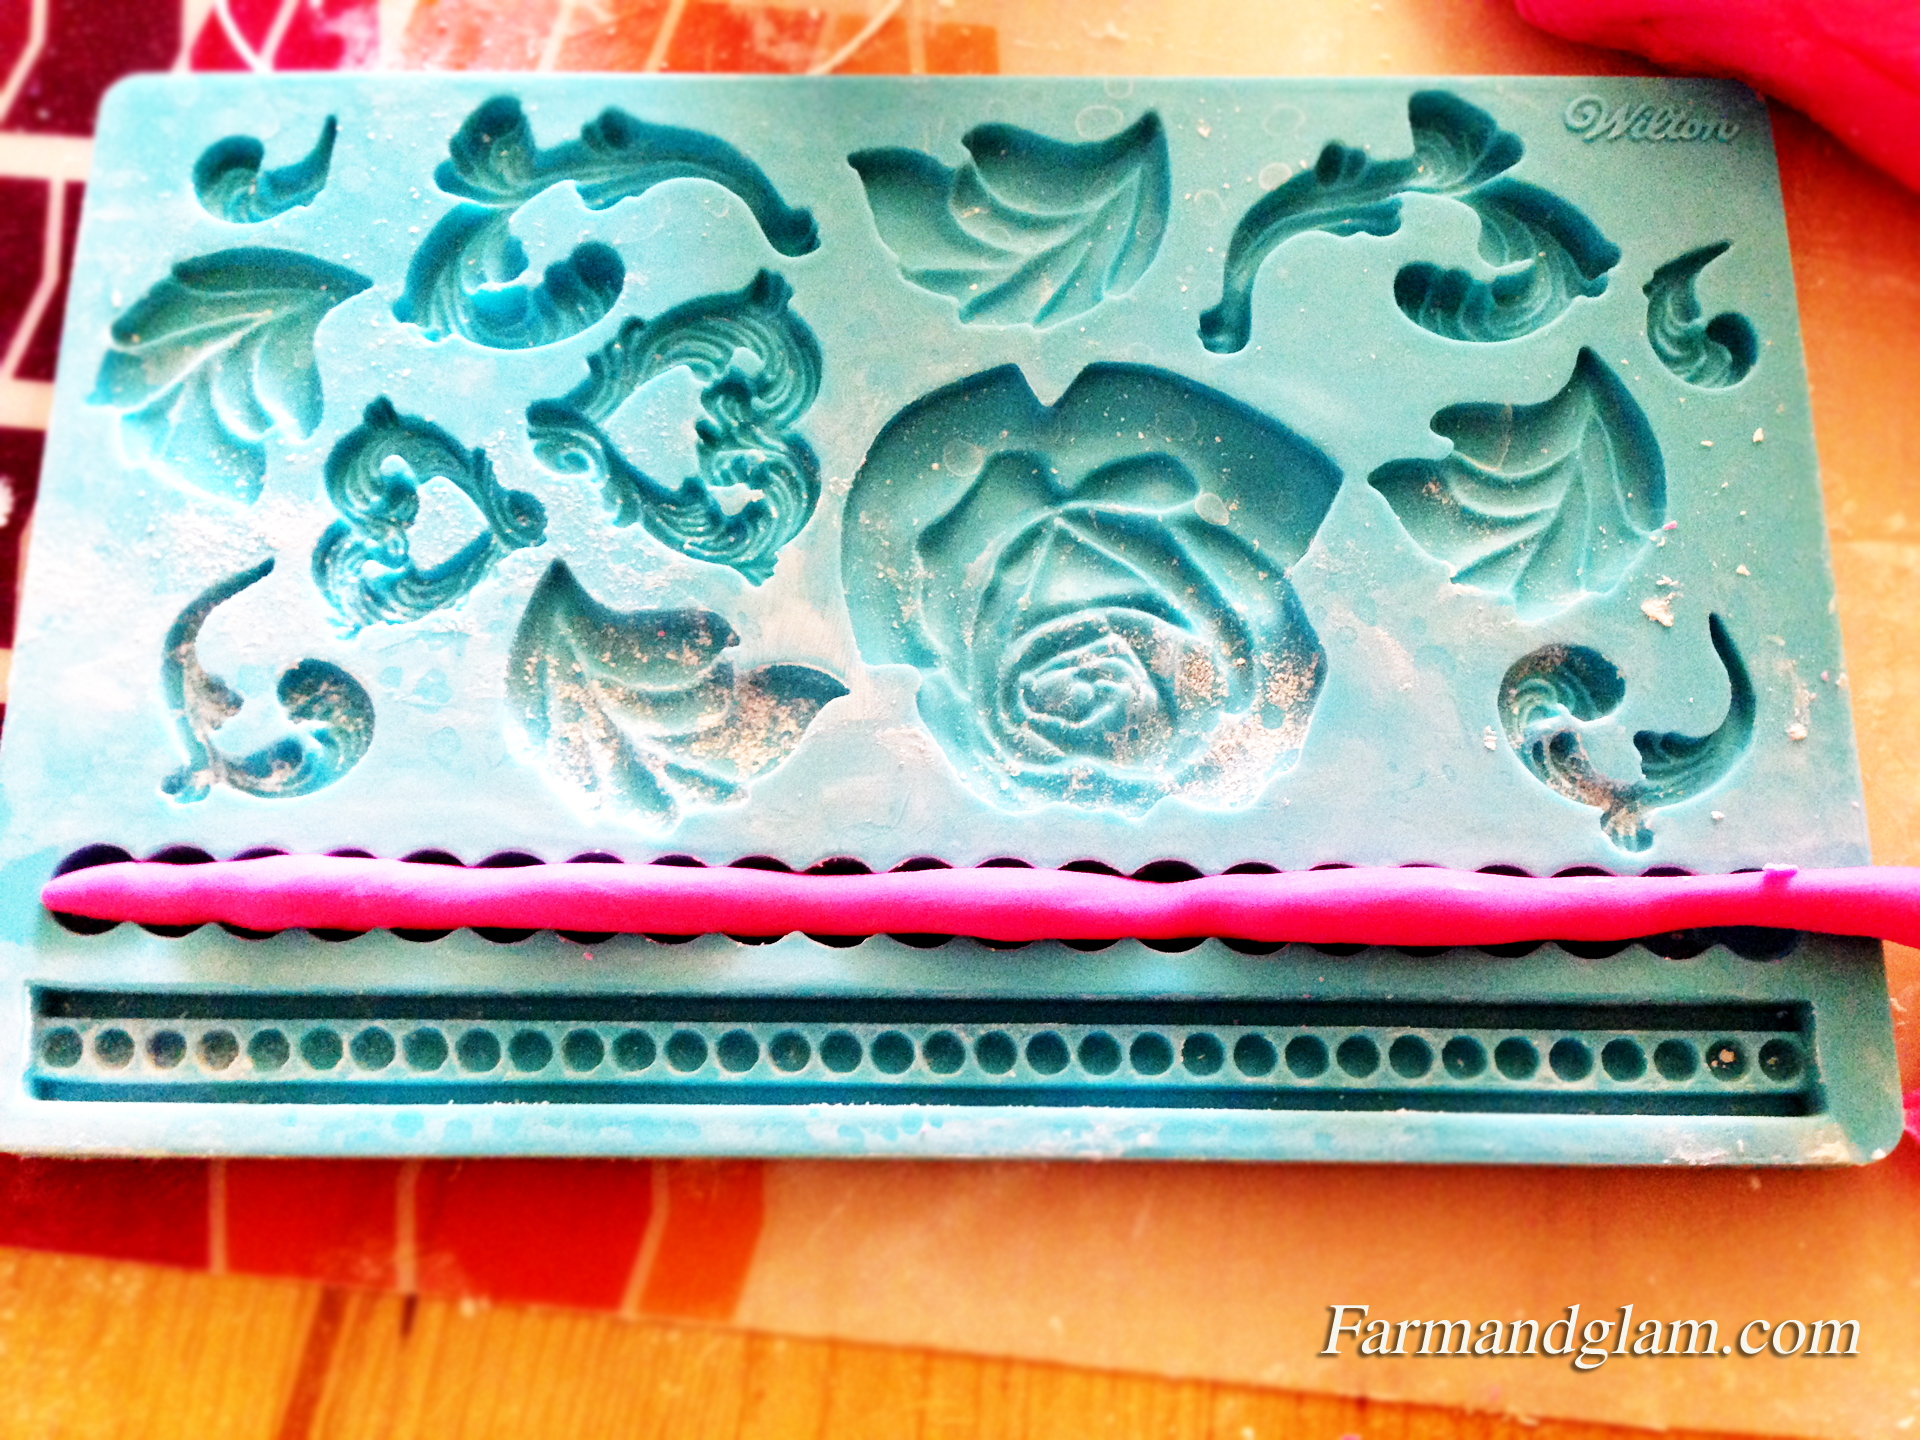 How to Decorate a Birthday Cake With Fondant (Easy Steps)